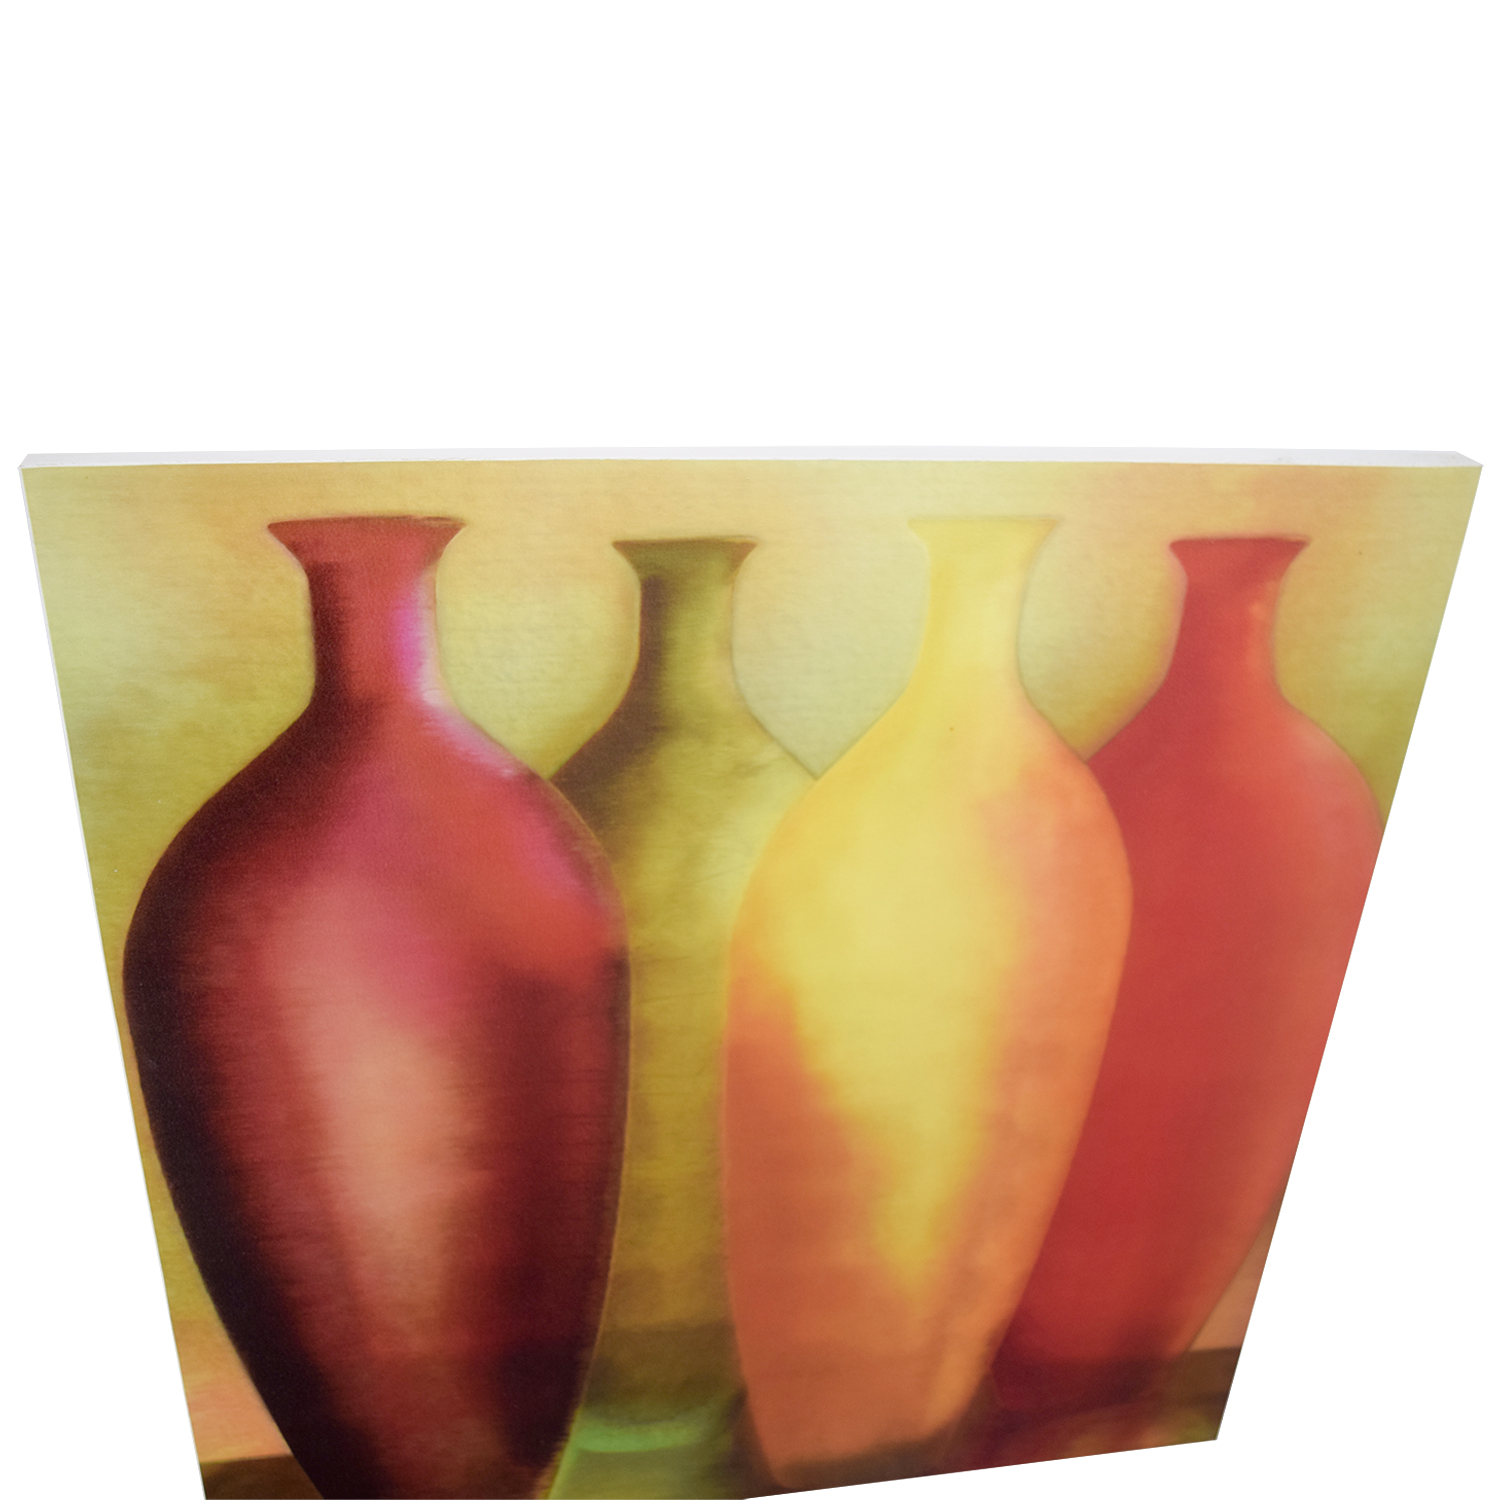 Vase Wall Art on Canvas second hand